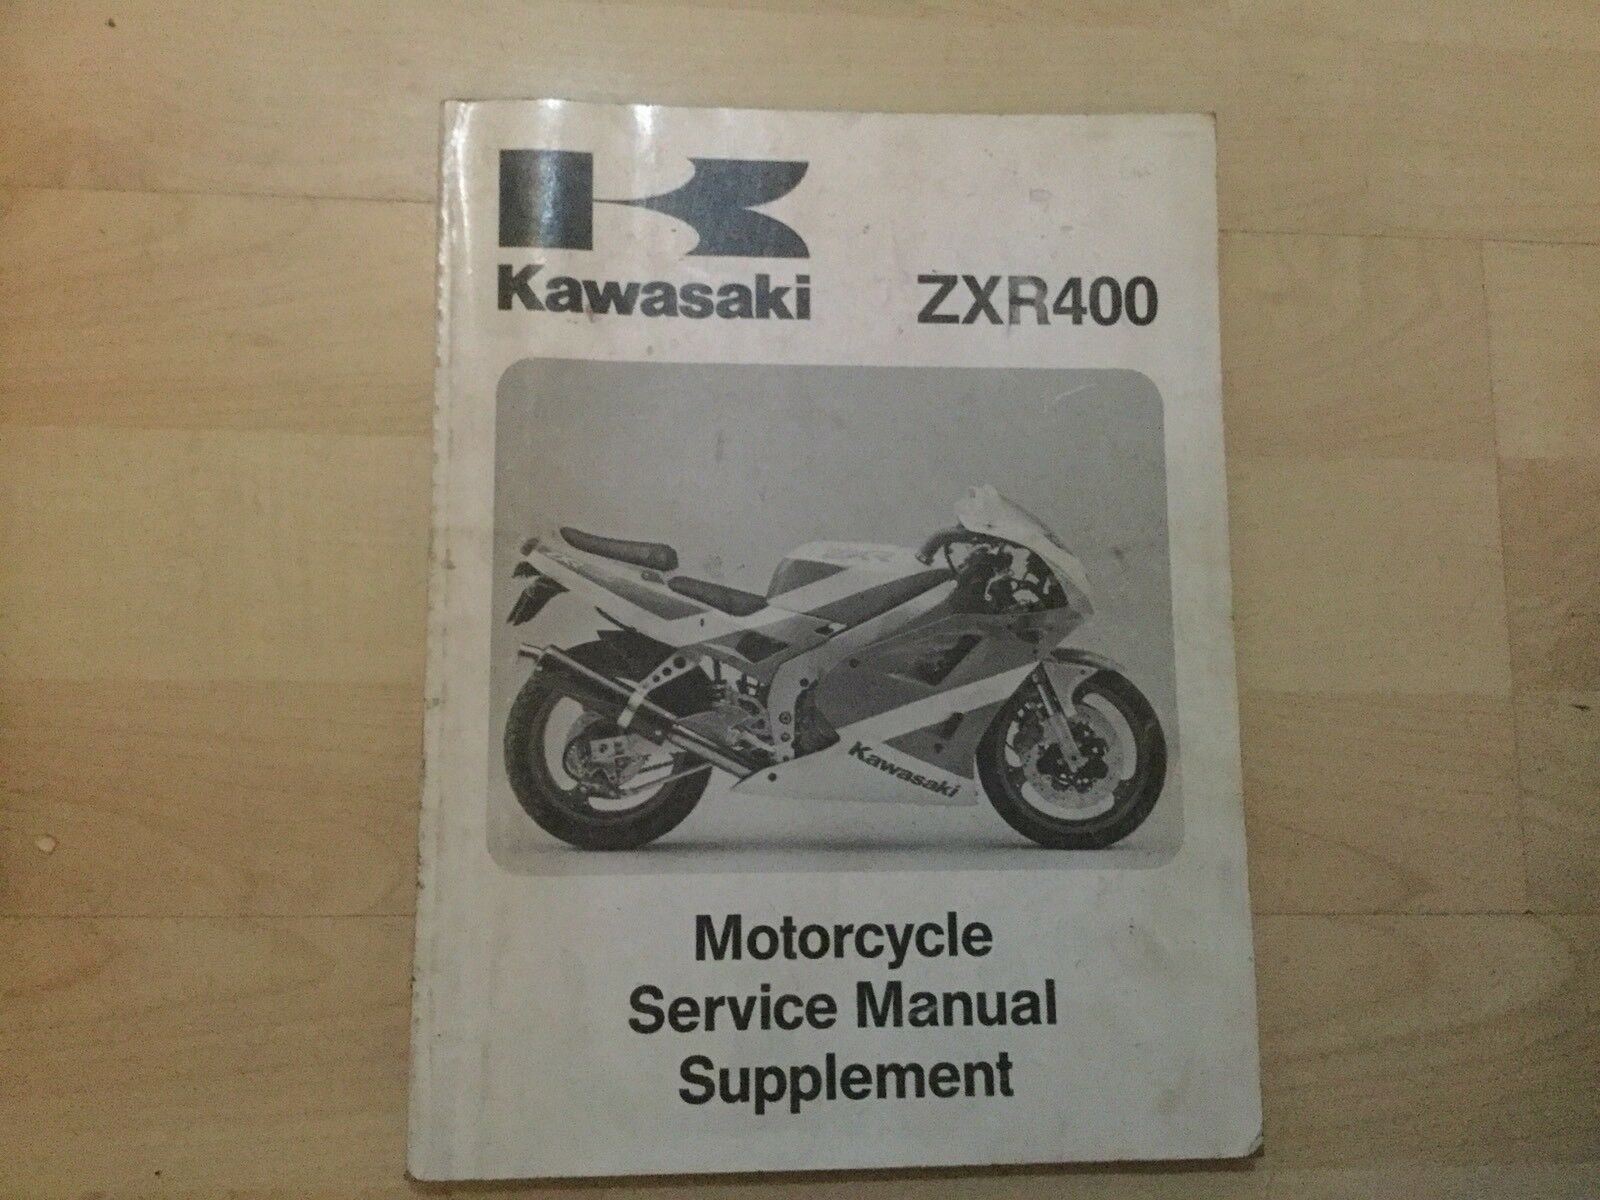 hight resolution of  array genuine kawasaki zxr400 motorcycle repair manual supplement ebay rh ebay